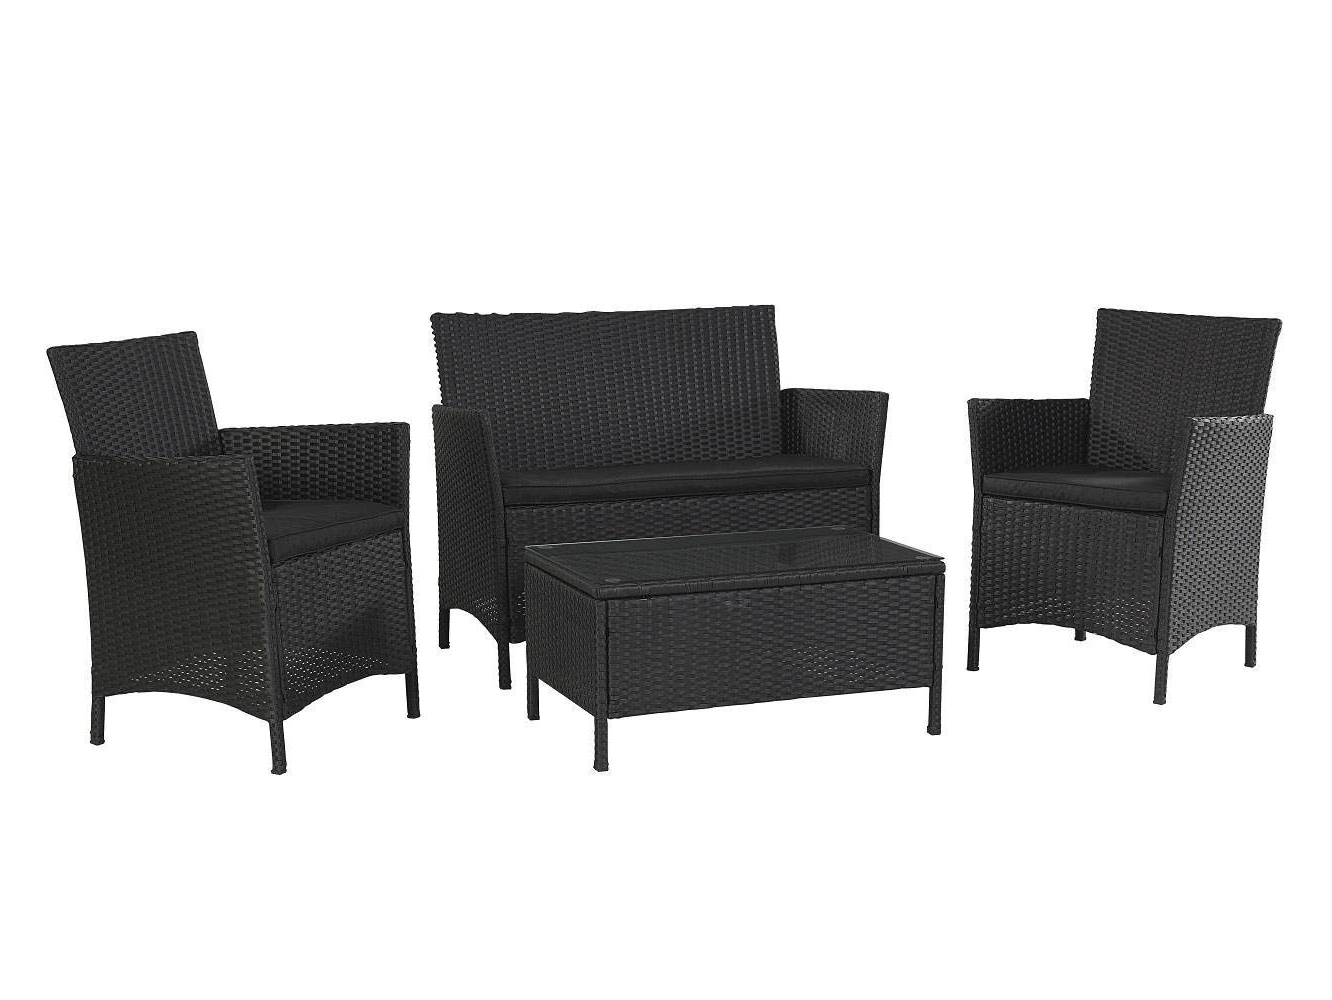 Patio Conversation Sets At Lowes With Regard To Recent Rattan Conversation Set Lowes Patio Furniture Outdoor Fire Pit (View 19 of 20)